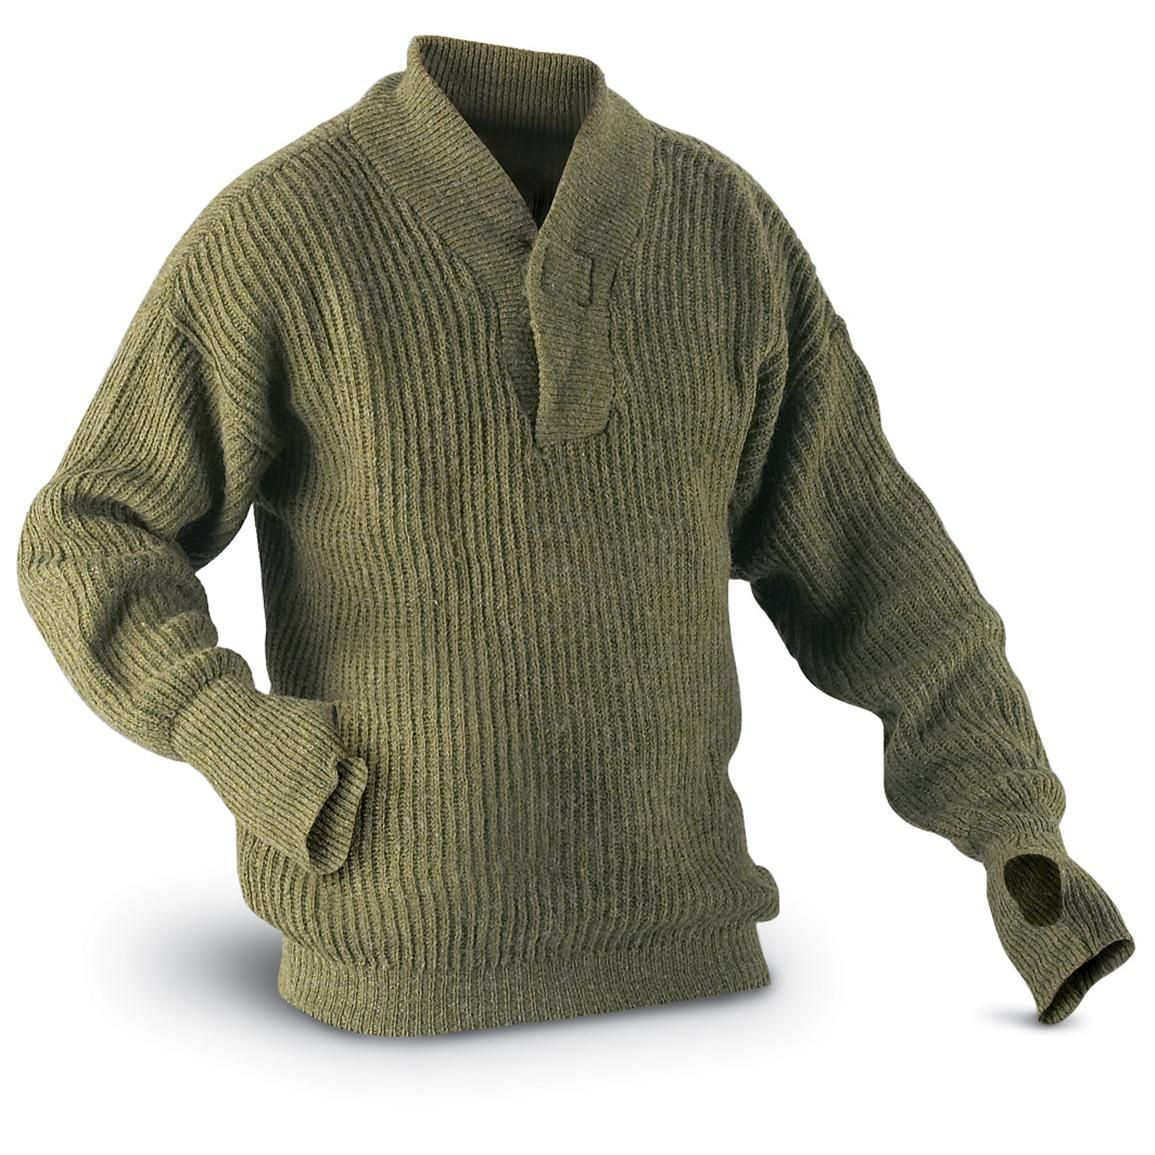 7ae9d0c45934 Wool sweater for your trip with Nordic Luxury // JG Black Book Collection  Norwegian Clothing